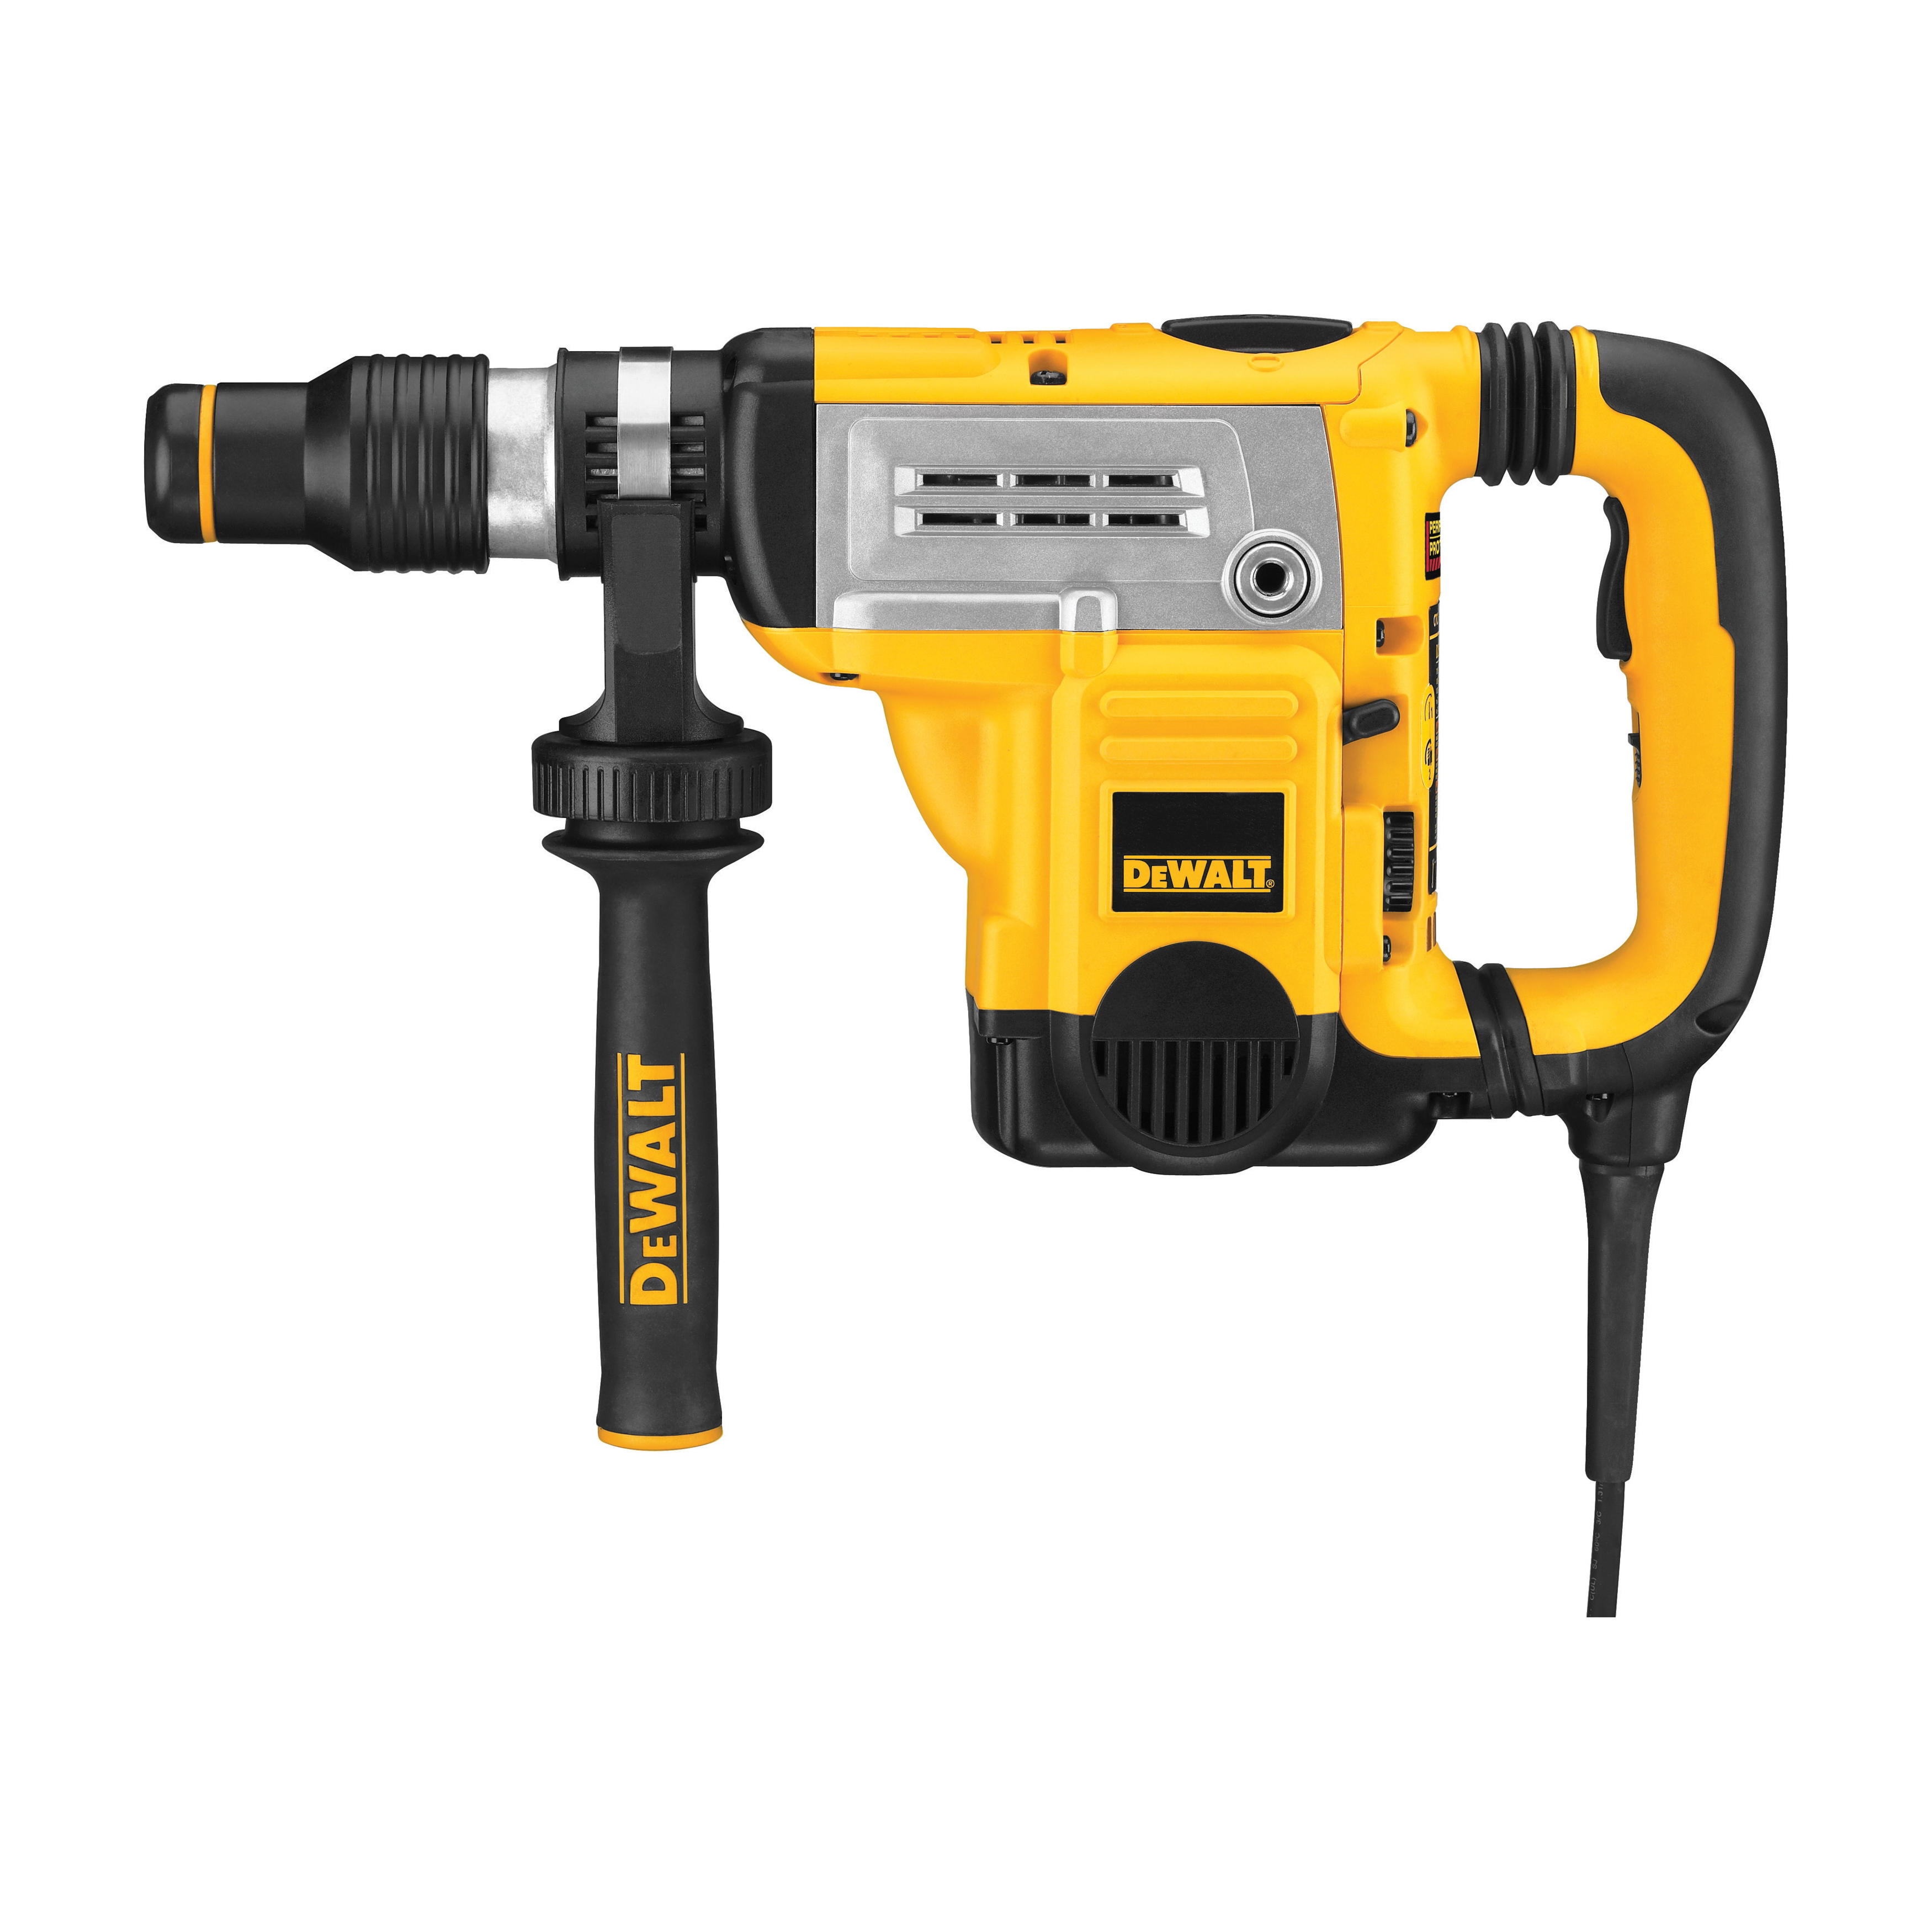 DeWALT® D25603K Combination Rotary Hammer Kit, 1-3/4 in SDS Max® Chuck, 1430 to 2840 bpm, 210 to 415 rpm No-Load, 4 in Max Core Bit Compatibility, 1-3/8 in Max Solid Bit Capacity, 18.6 in OAL